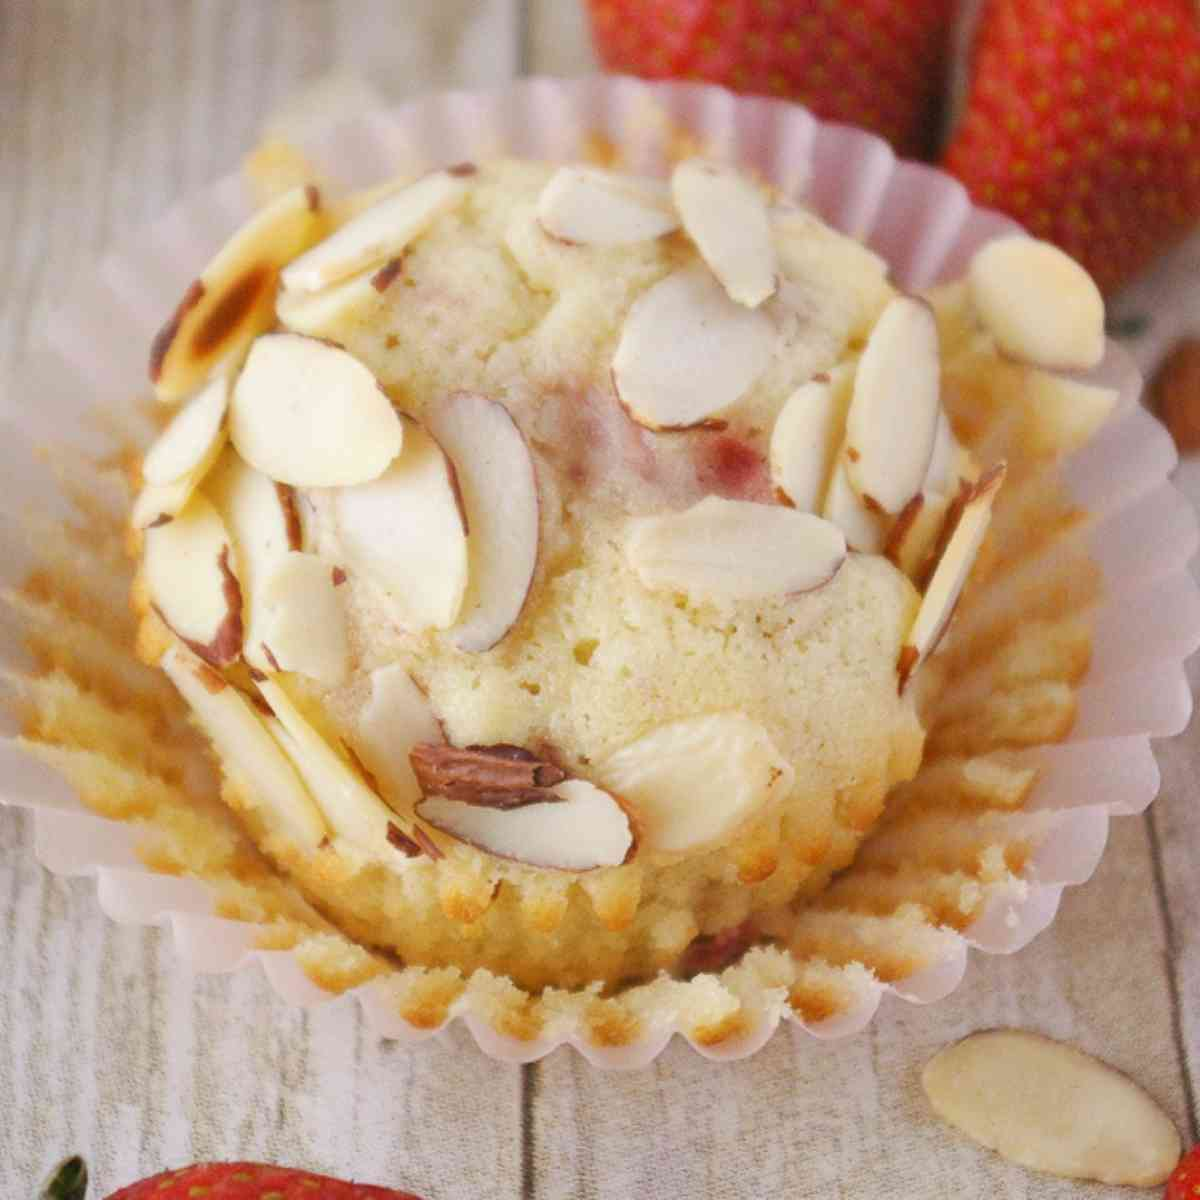 A strawberry almond muffin with the paper liner peeled off.